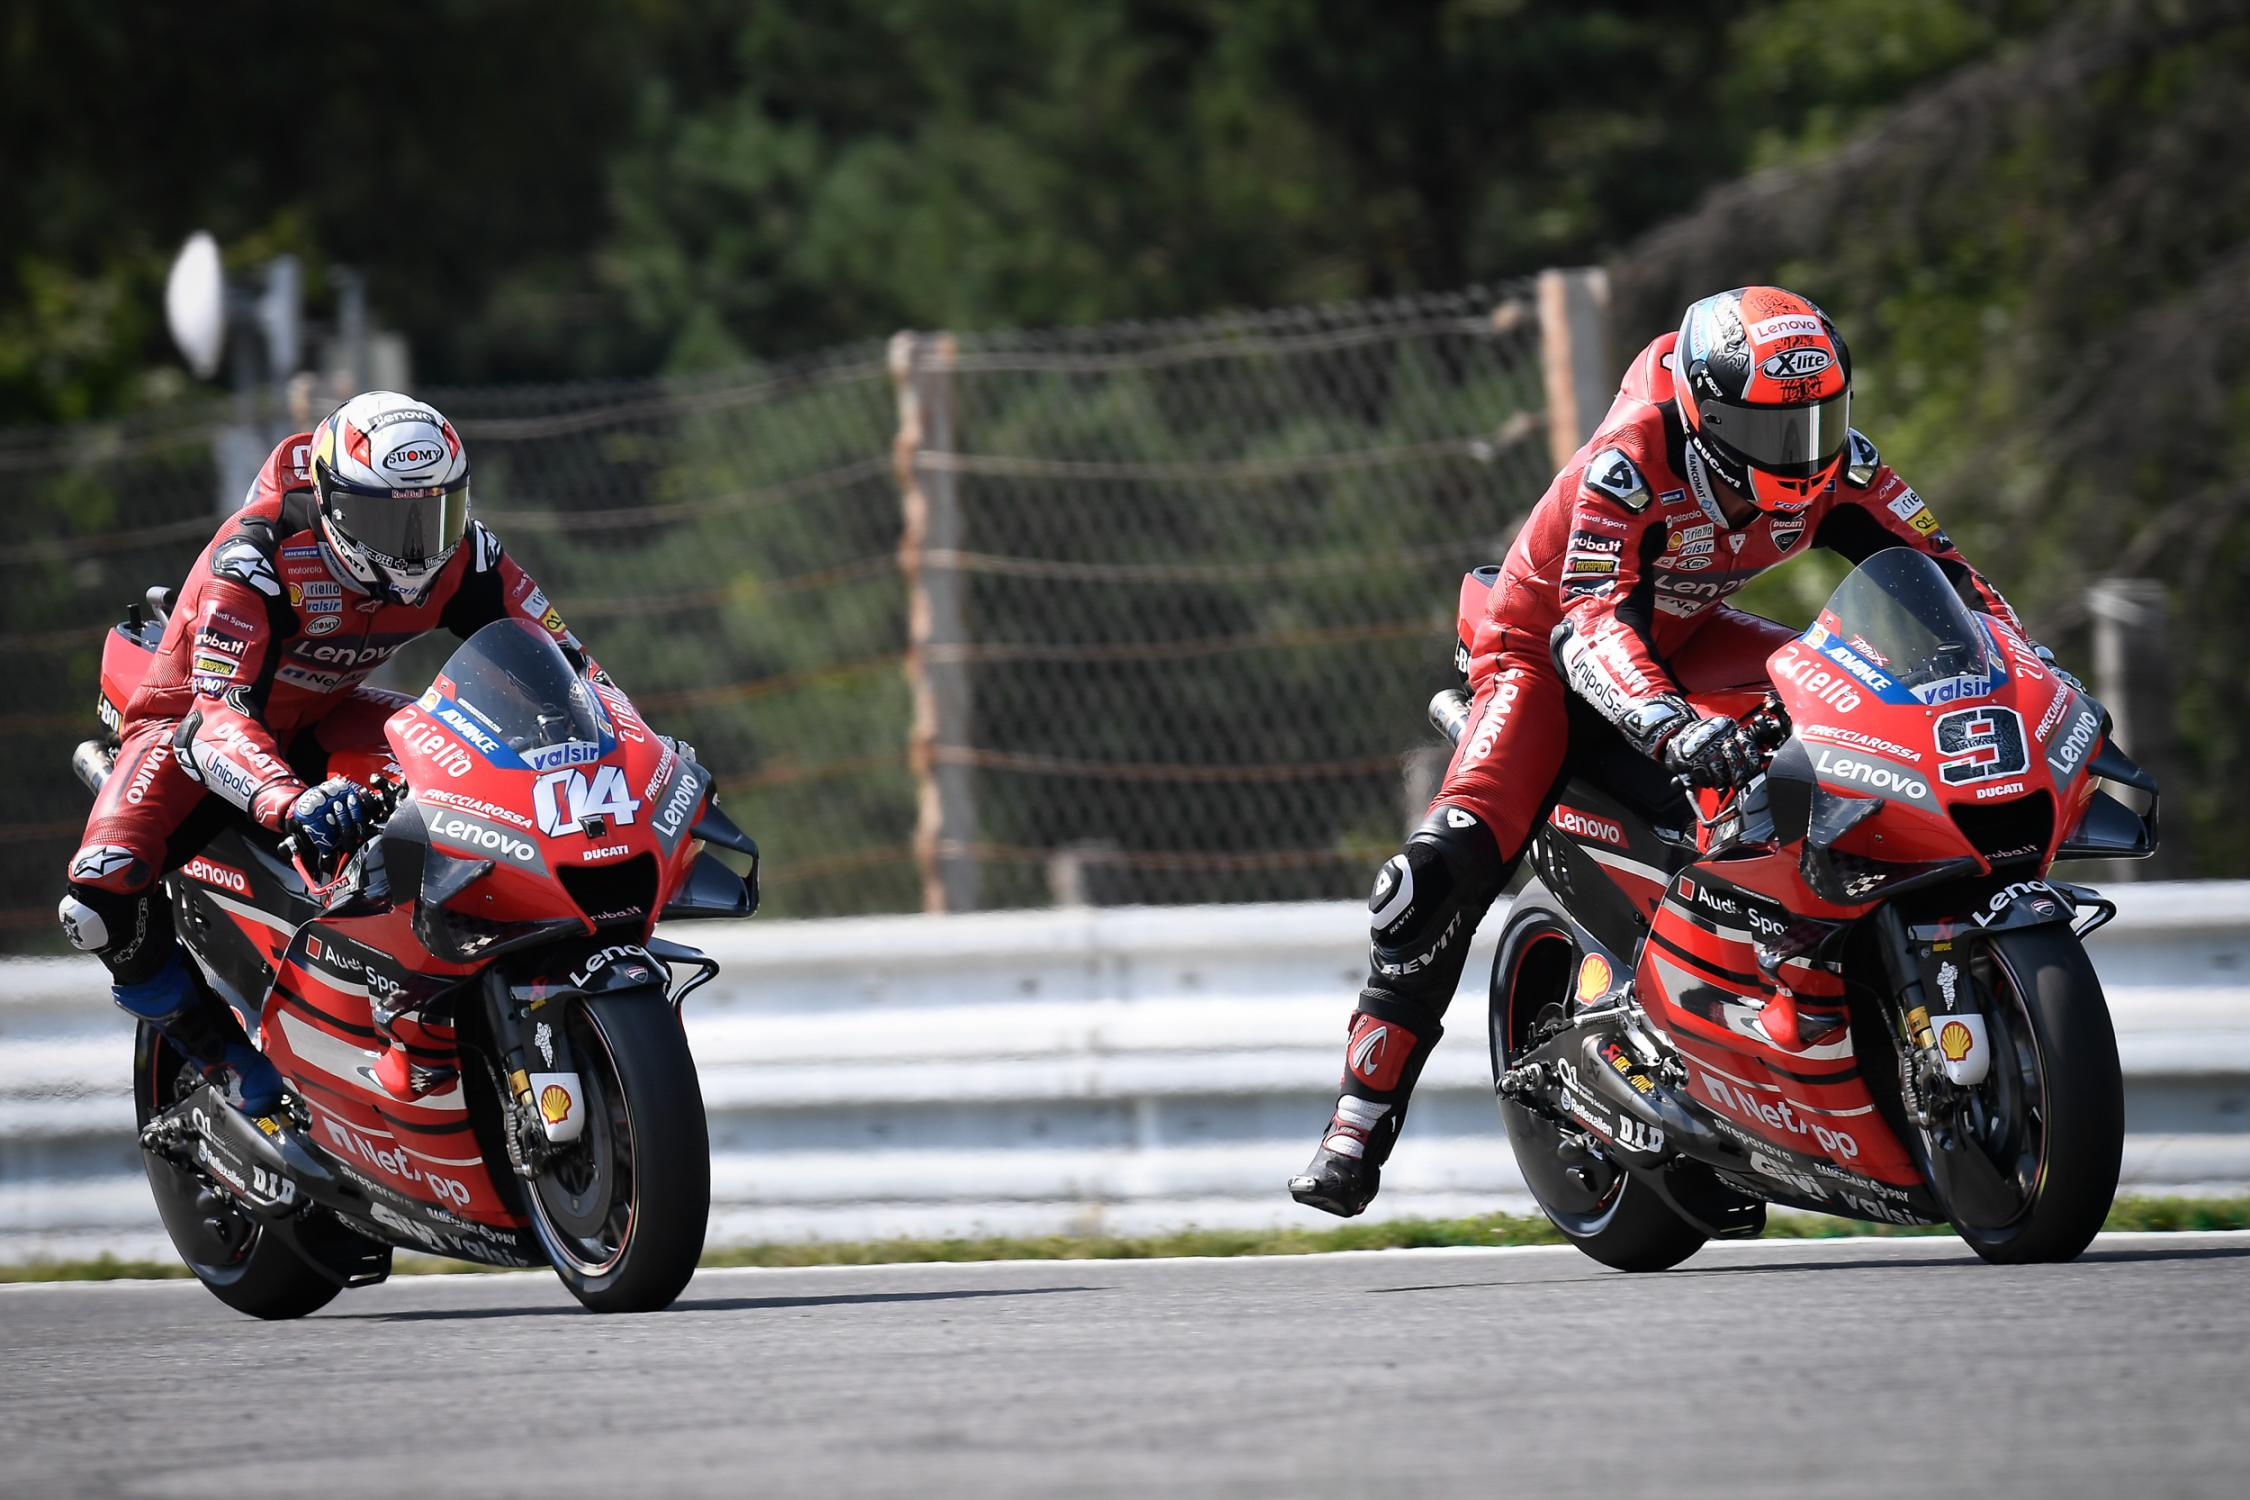 MotoGP 2020: The Results Of The Grand Prix Of Czech Republic (Brno)